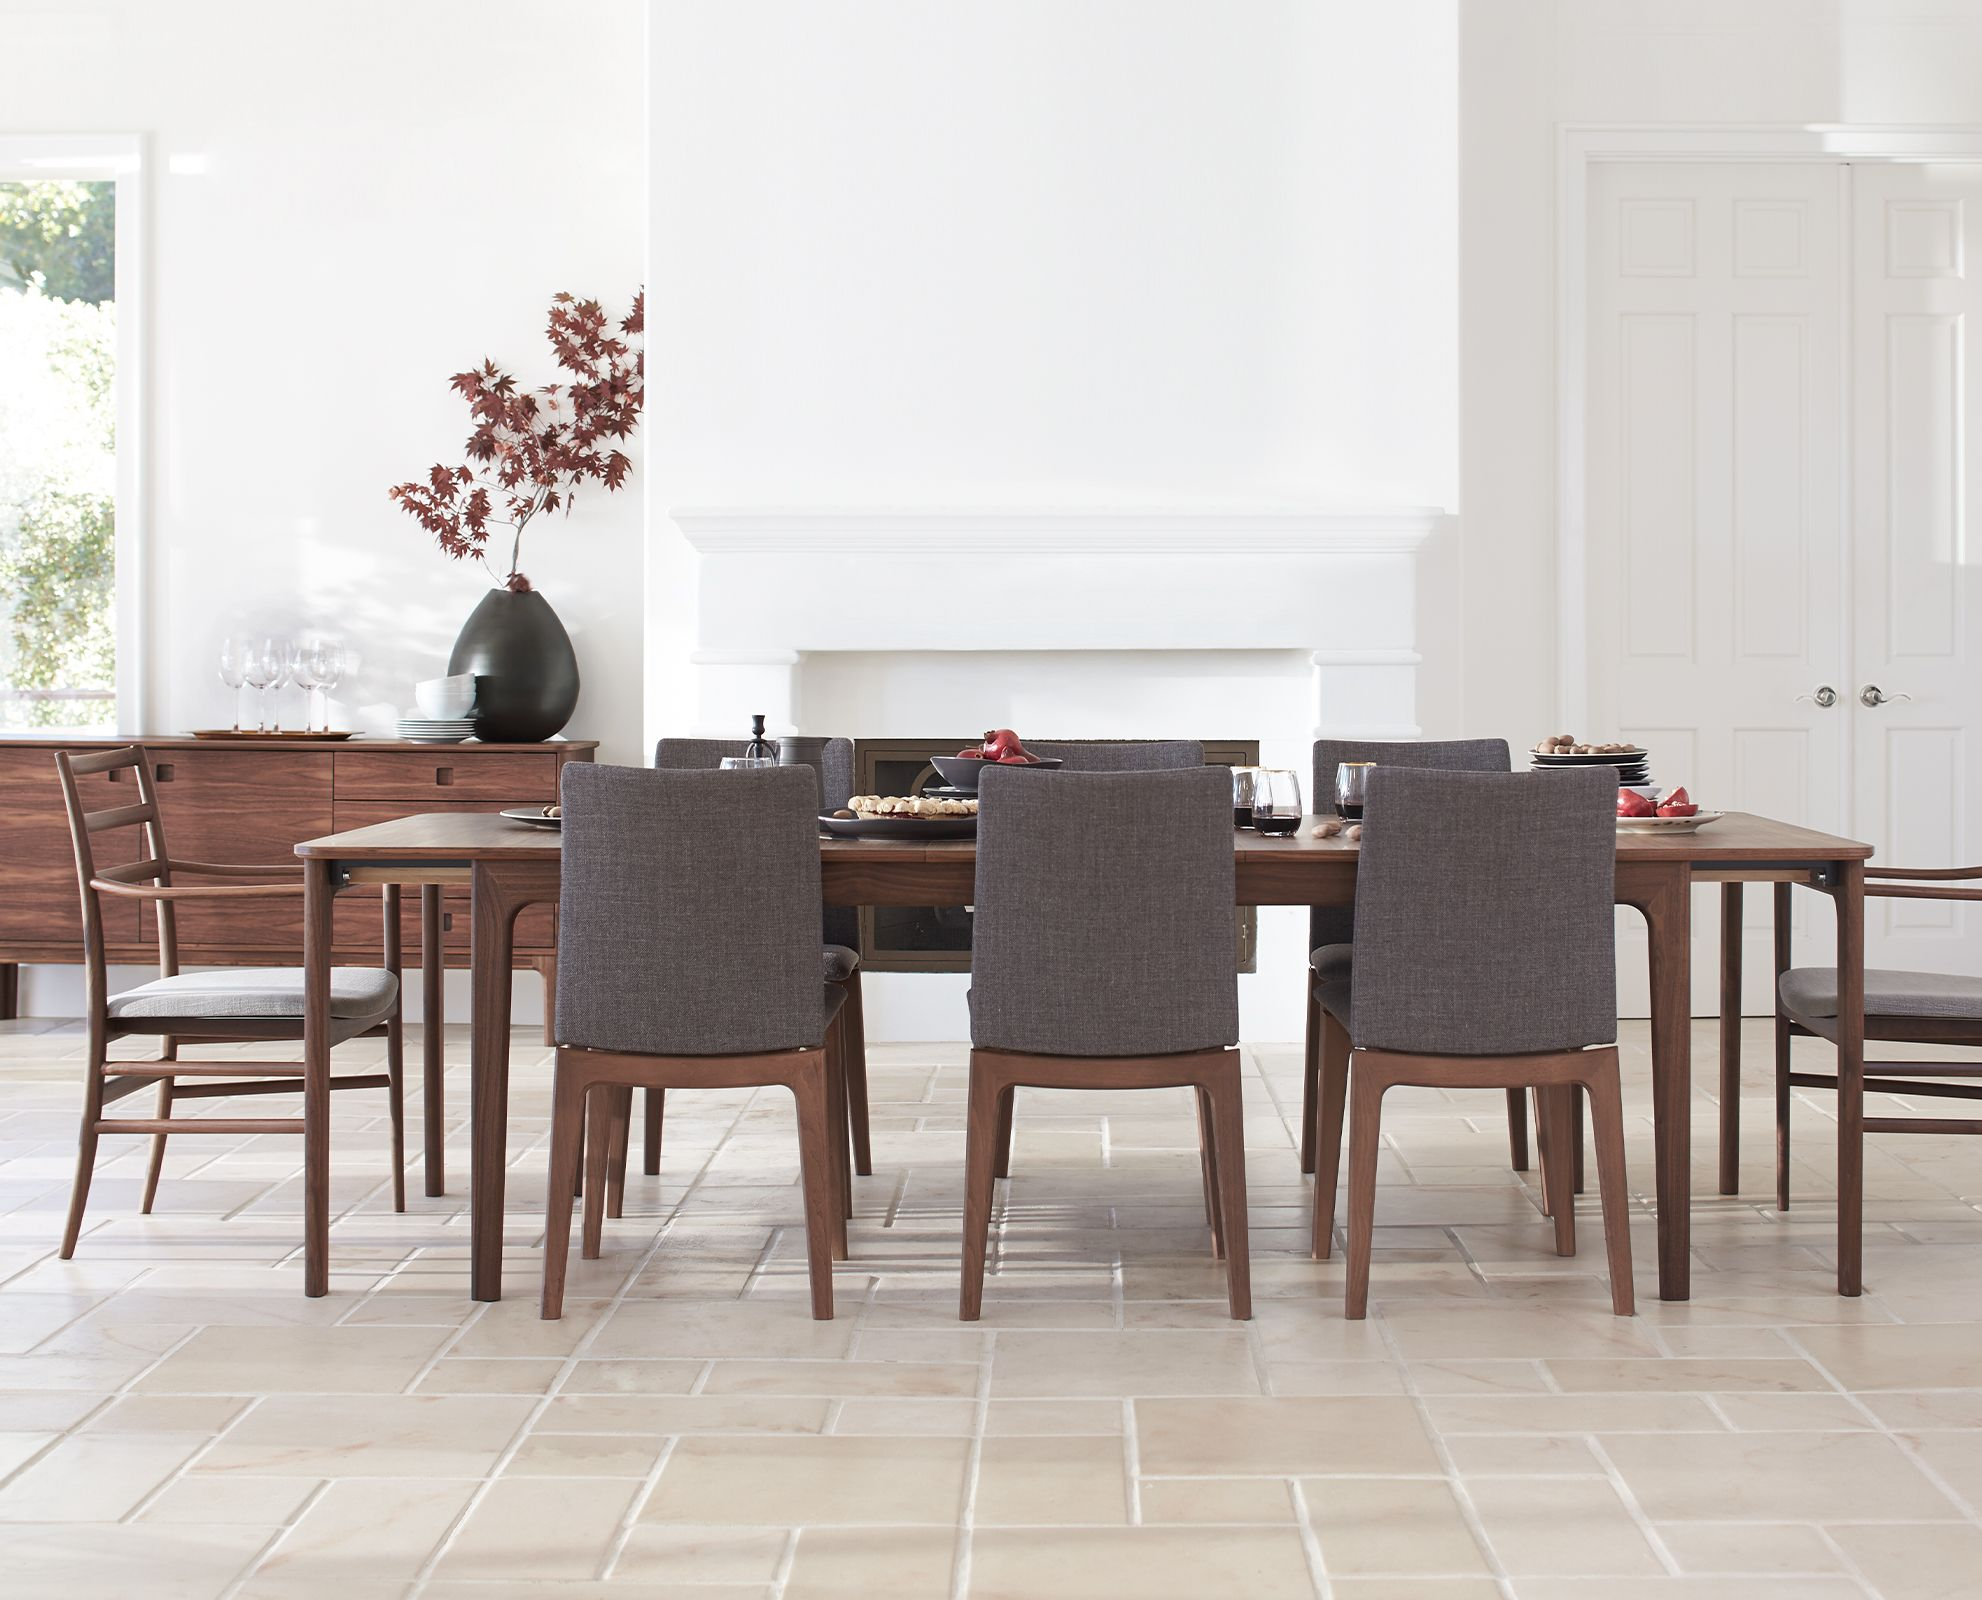 Sundby Dining Chair By Scandinavian Design I Like The